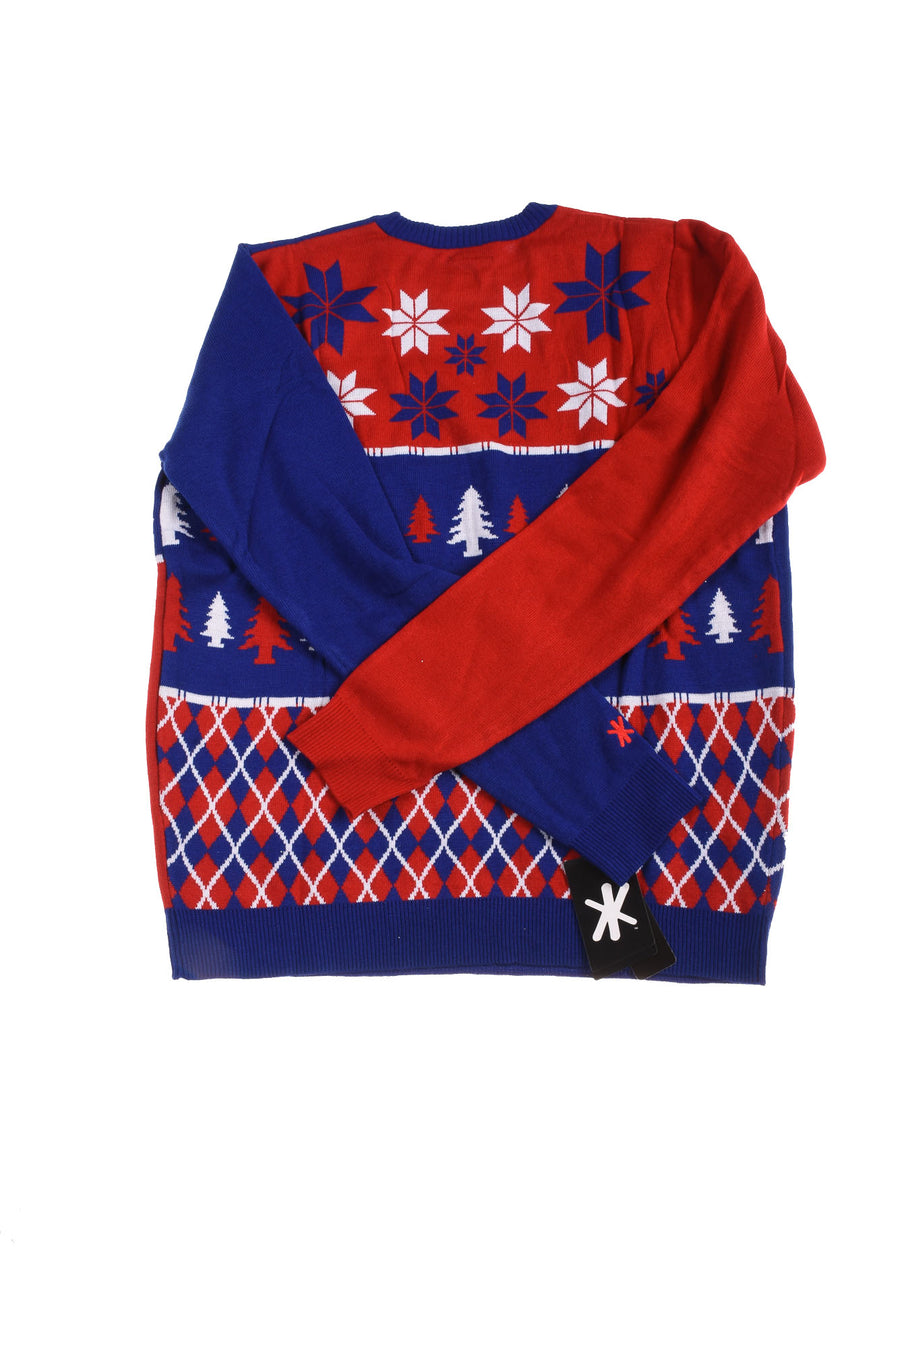 Men's New York Giants Christmas Sweater By NFL Team Apparel